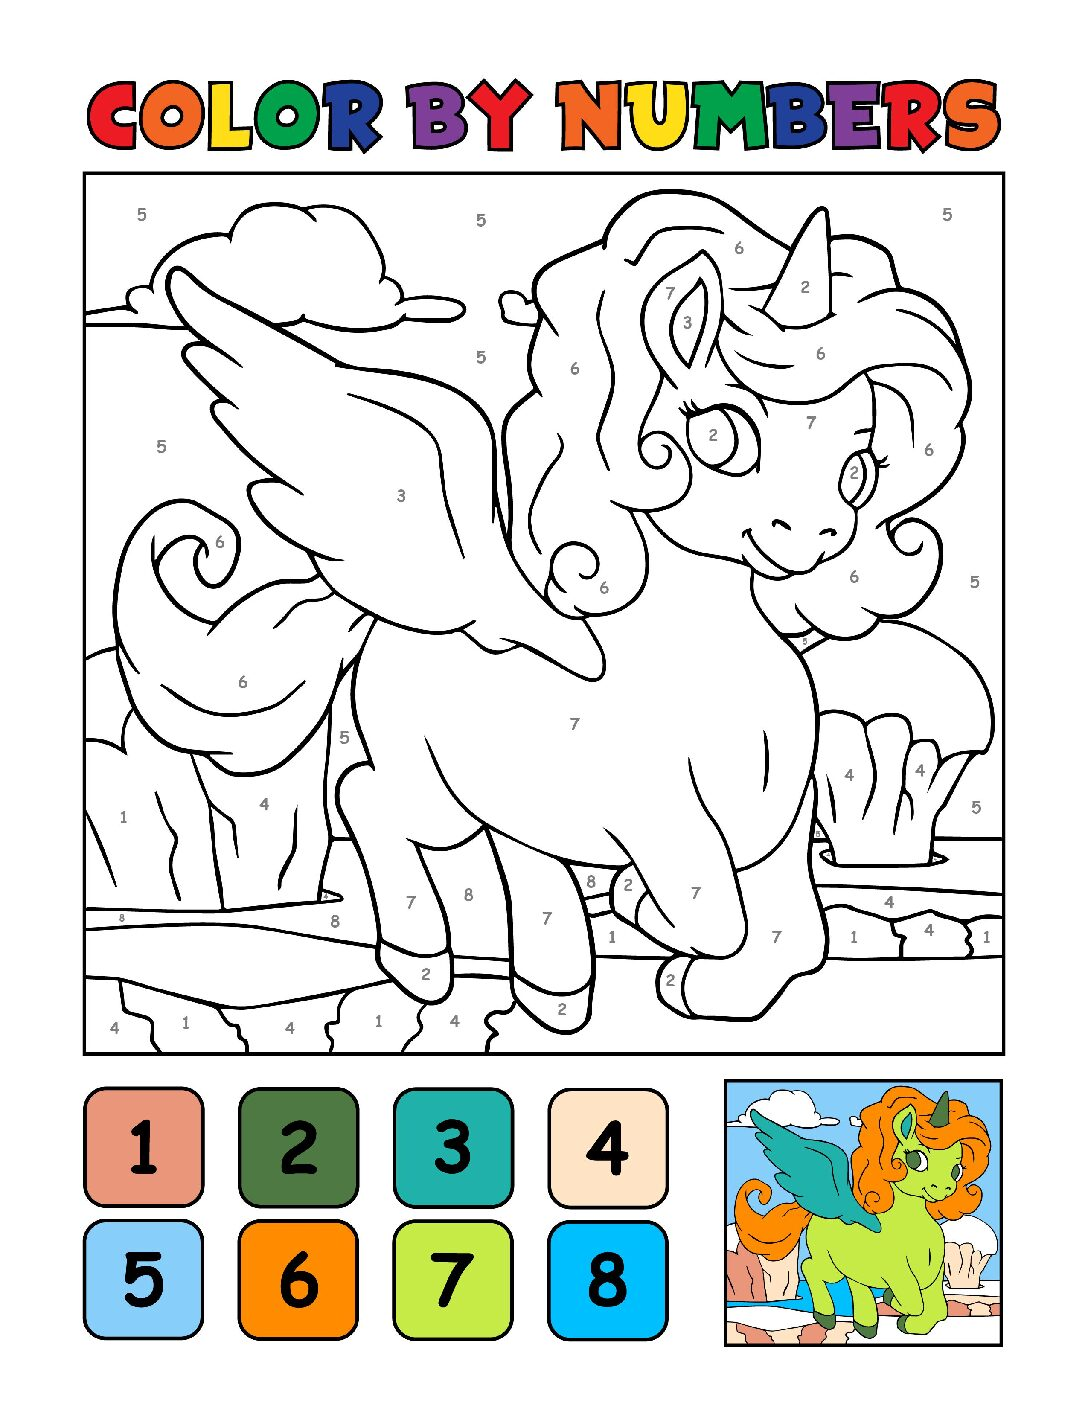 Color-by-Numbers-Kids_Unicorns-15-01-pdf Free Printable Unicorn Colouring Pages